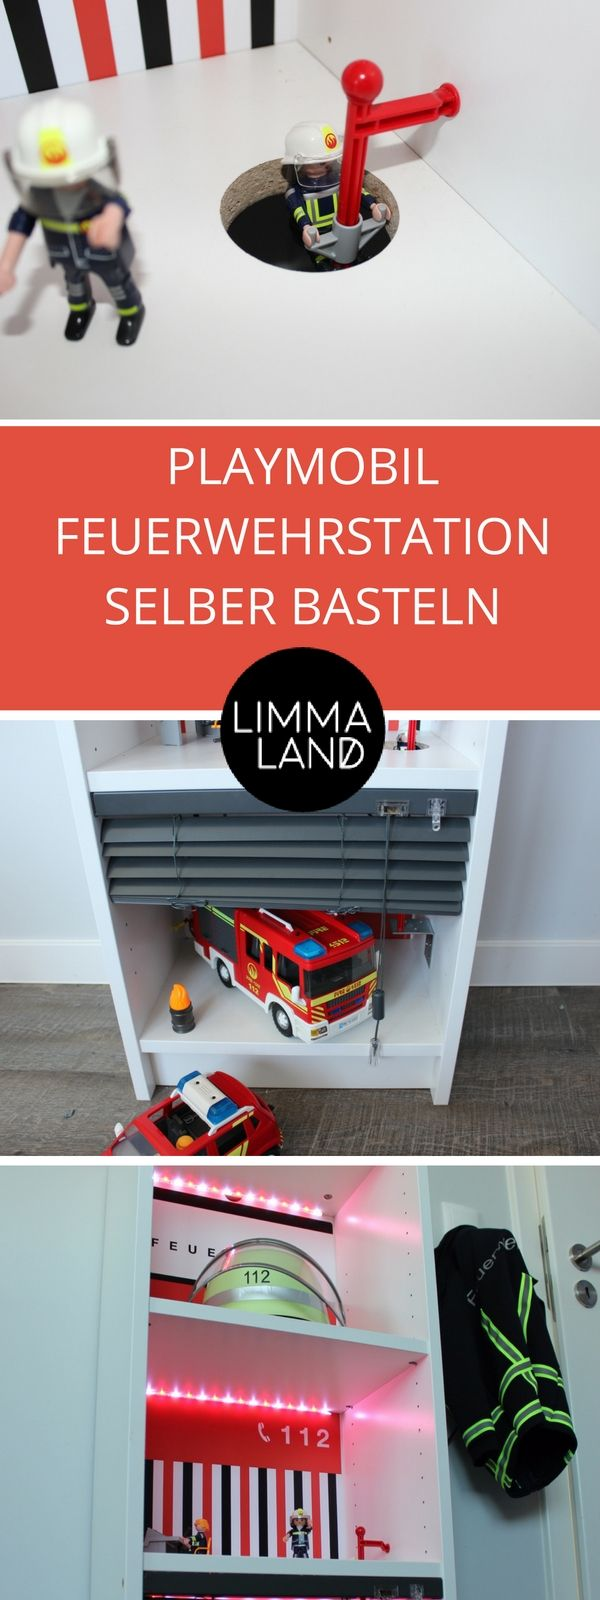 die besten 25 kinderspielzeug selbstgemacht ideen auf. Black Bedroom Furniture Sets. Home Design Ideas